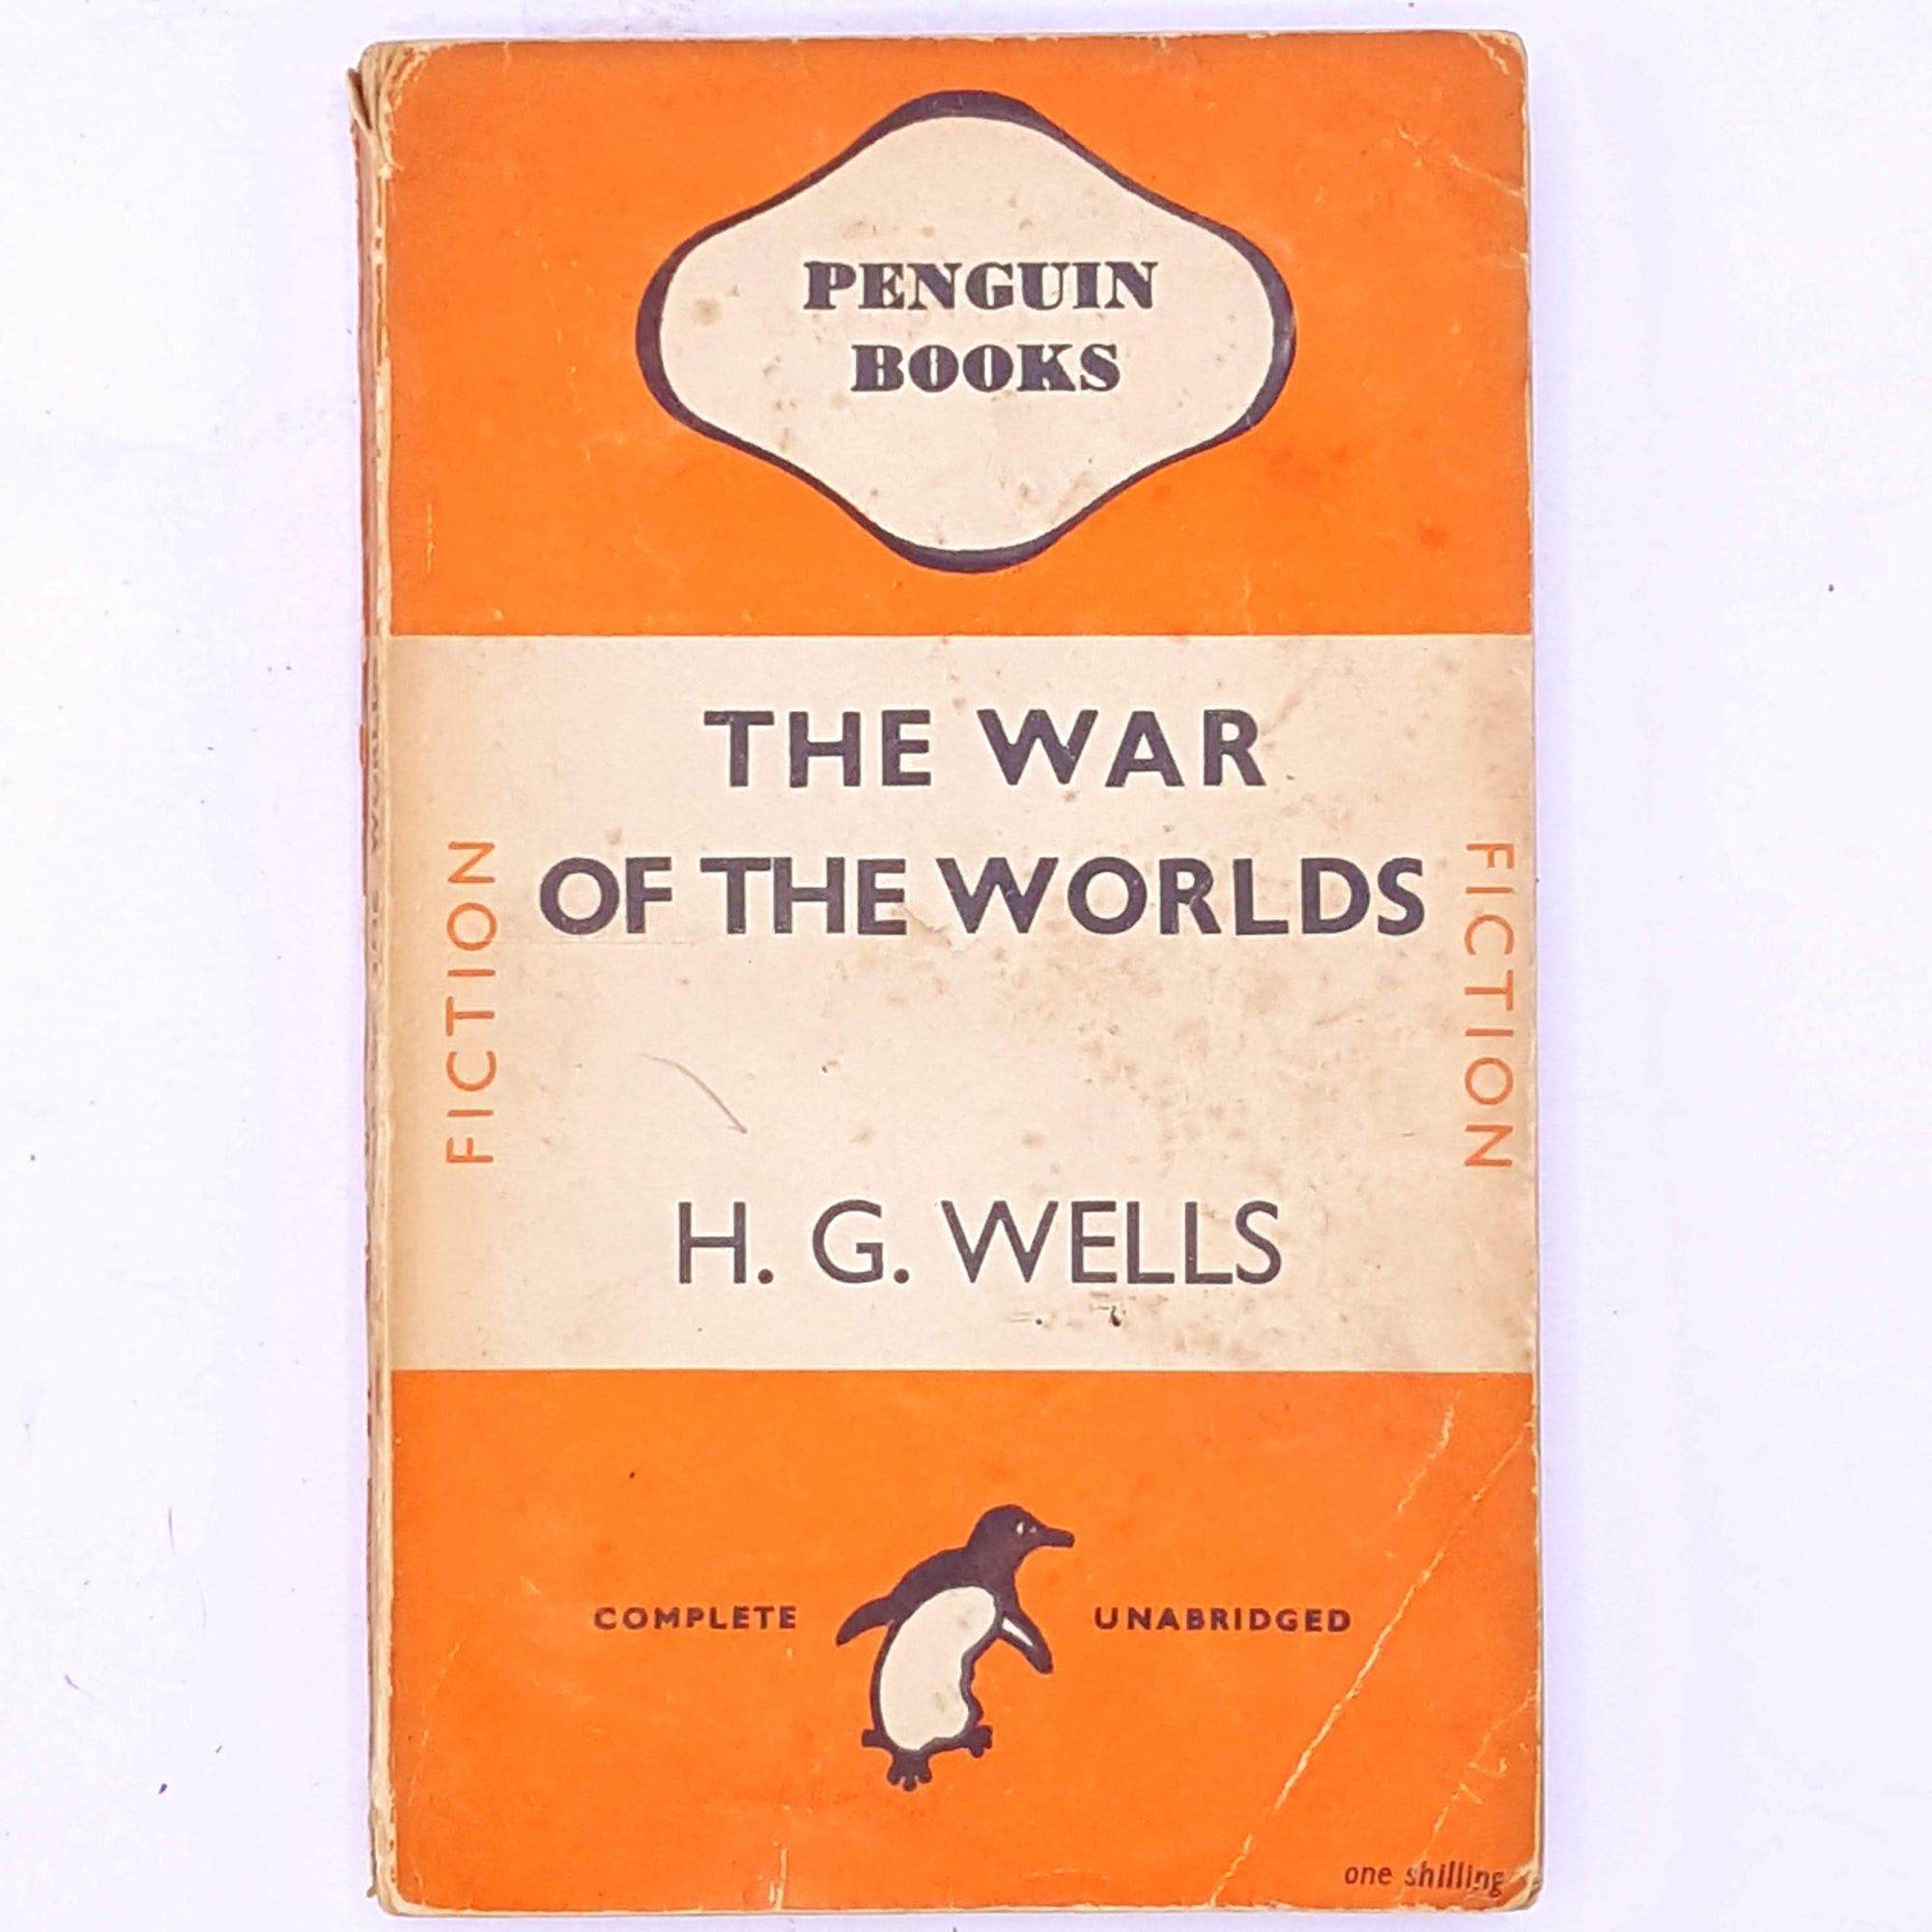 classic-patterned-books-vintage-decorative-penguin-hg-wells-antique-the-war-of-the-worlds-aliens-old-science-fiction-thrift-fantasy-country-house-library-